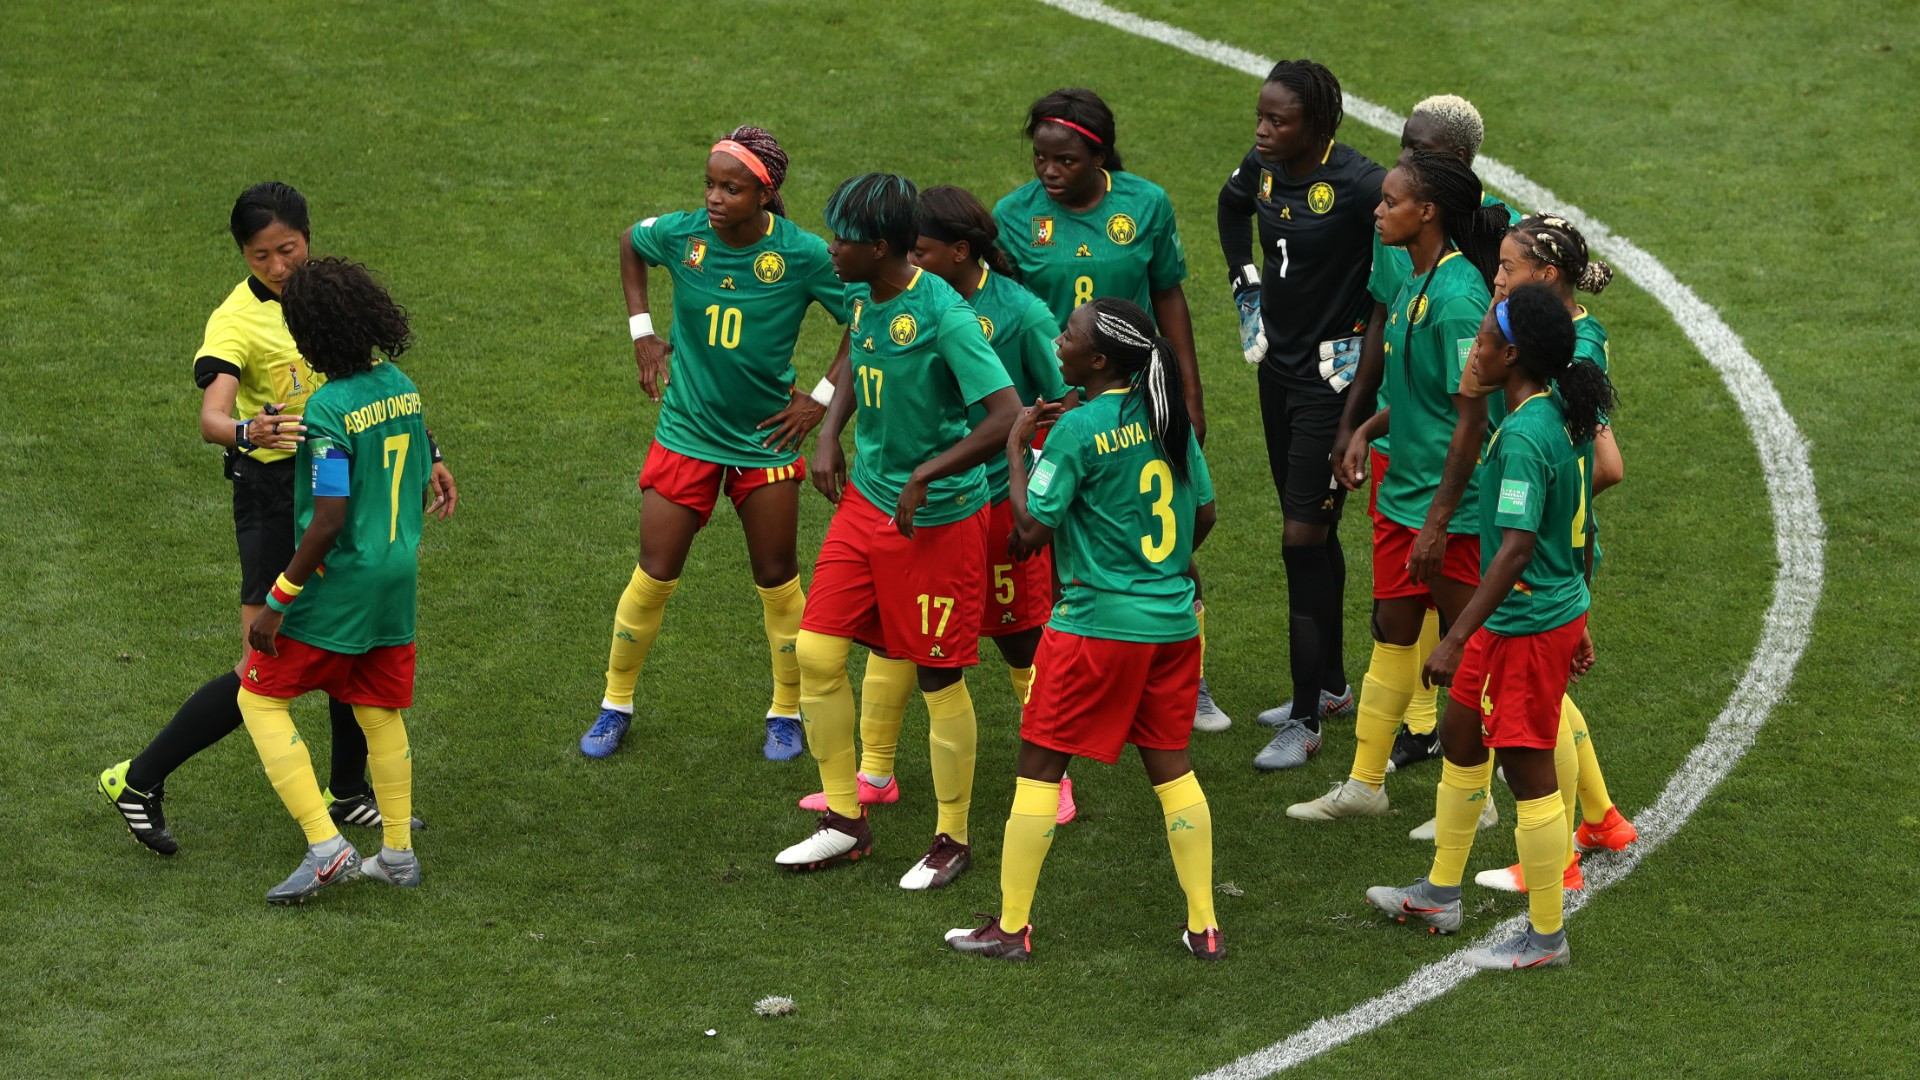 Cameroon: Indomitable Lionesses face Federation Internationale de Football Association inquiry after England VAR mess